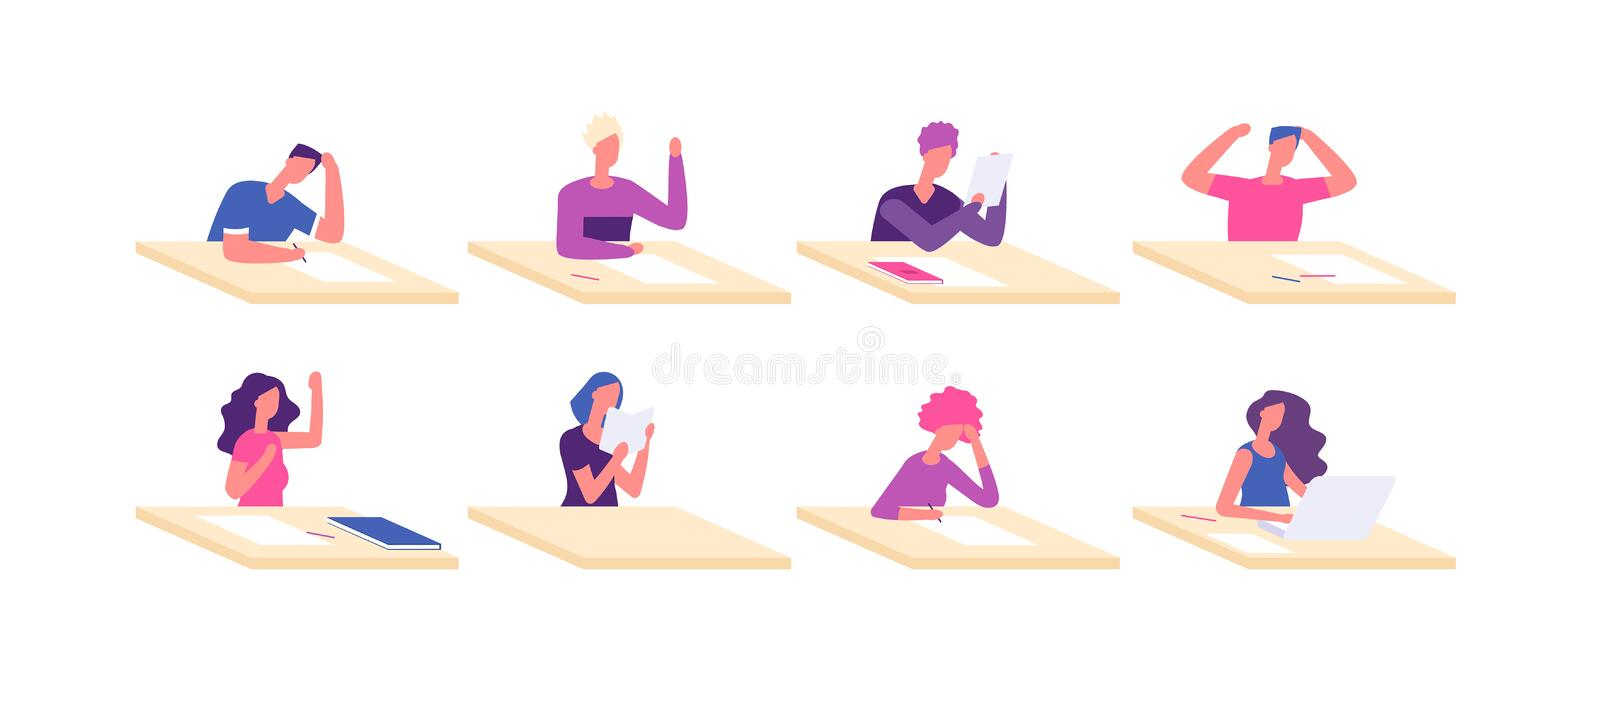 Student at desks. Young boy girl sitting desk pupil teenagers at tables preparation school test college examination stock illustration